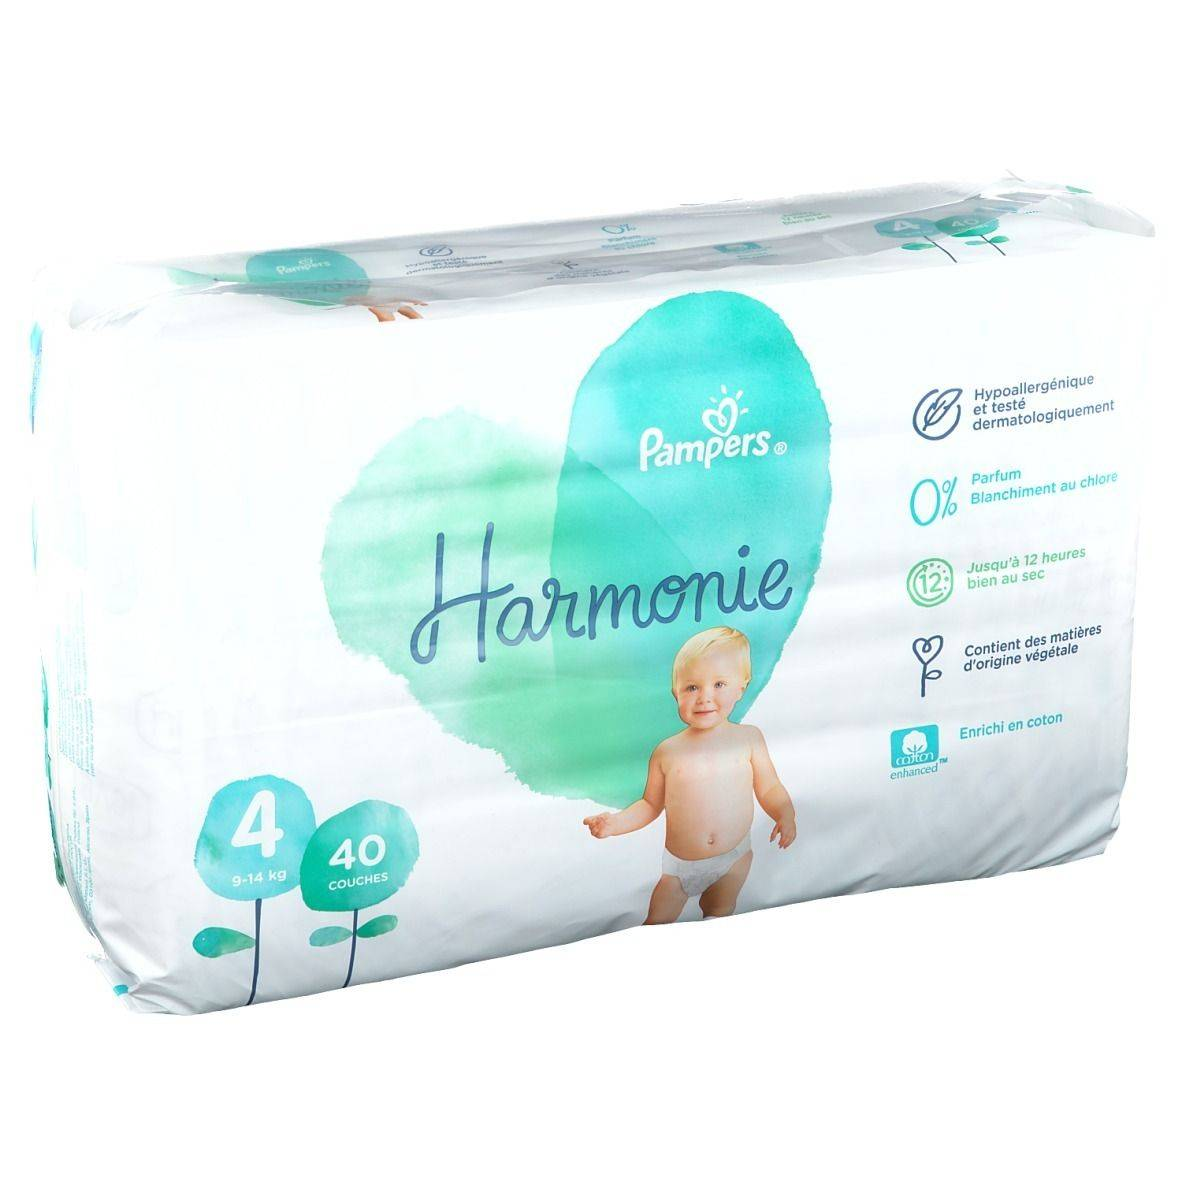 Pampers Harmonie Couches Taille 4, 9-14 kg pc(s) couche(s)